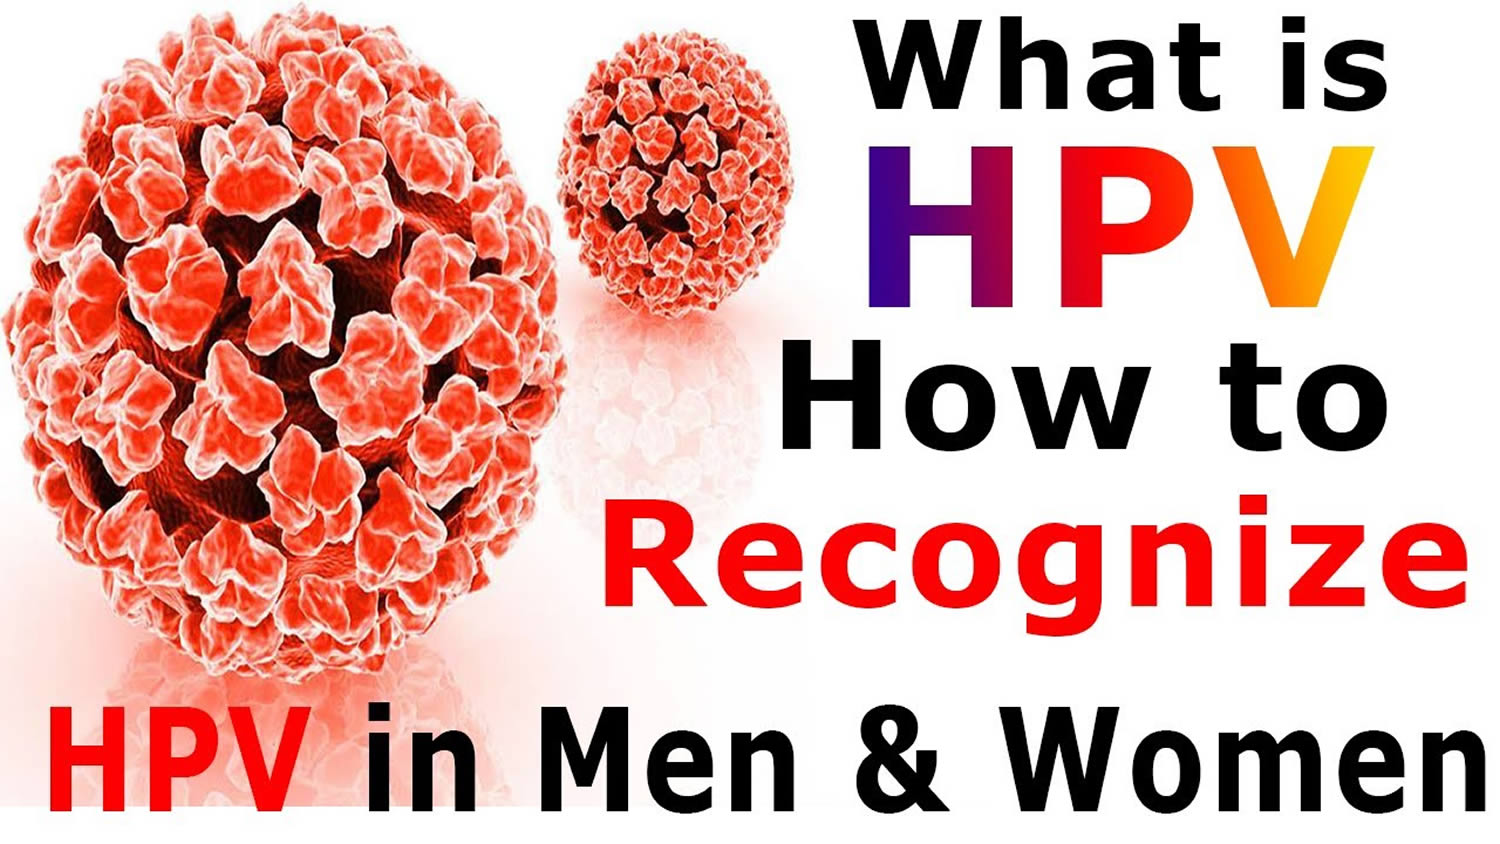 Can i live a normal life with hpv